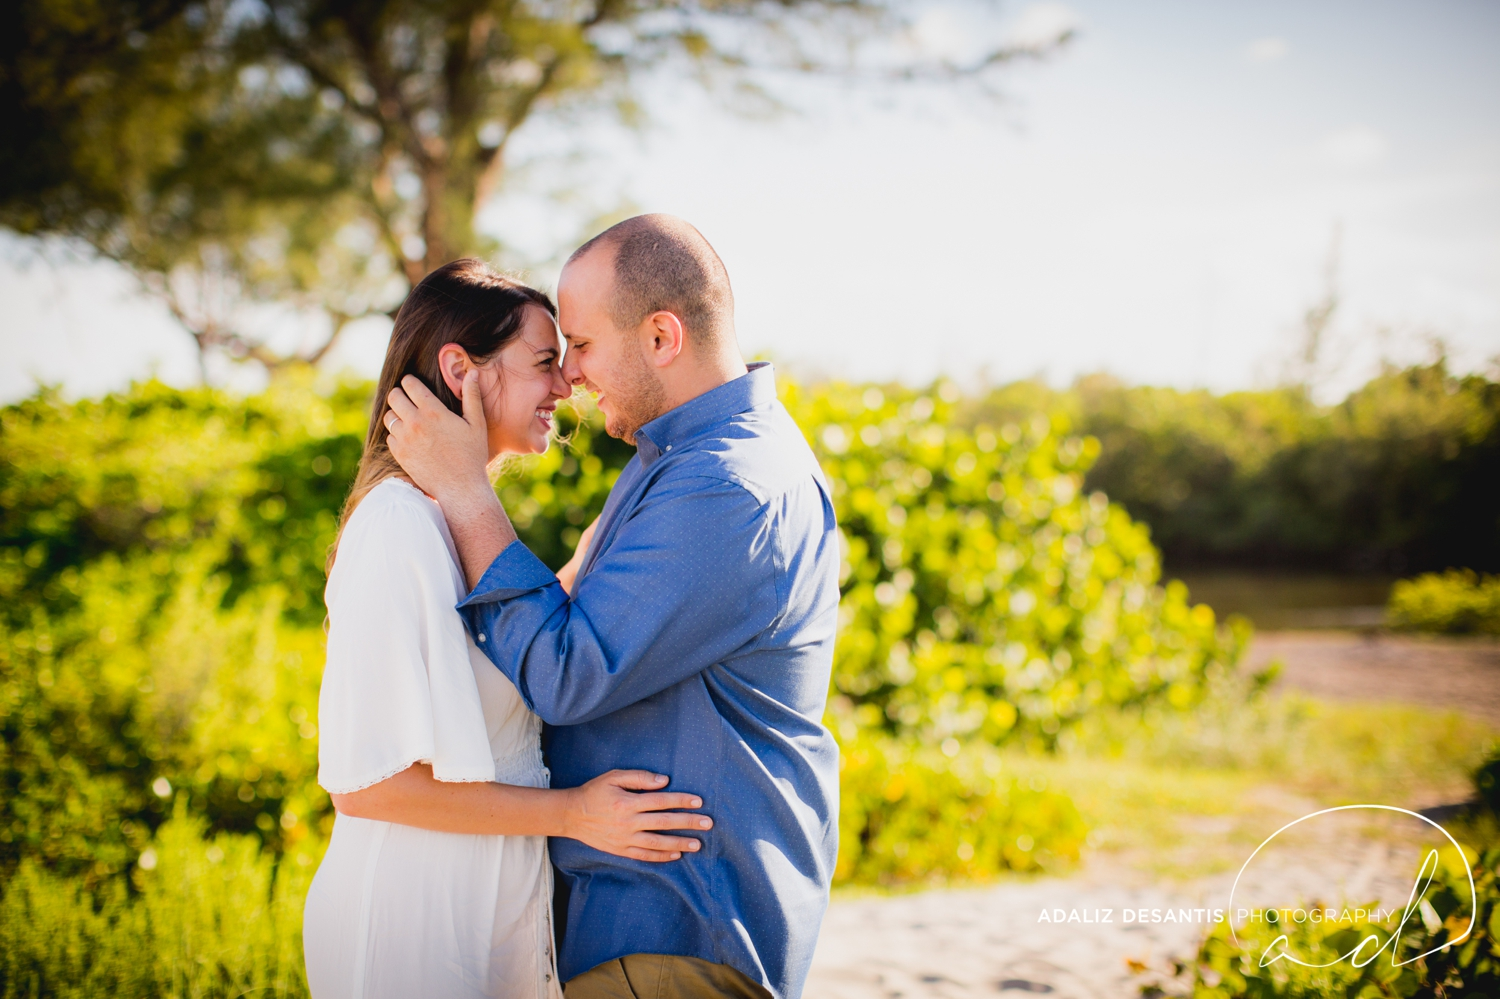 Gaby Aaron Engagement Session South Florida Dania Beach PIer Summer Love Destination Engaged 3.jpg